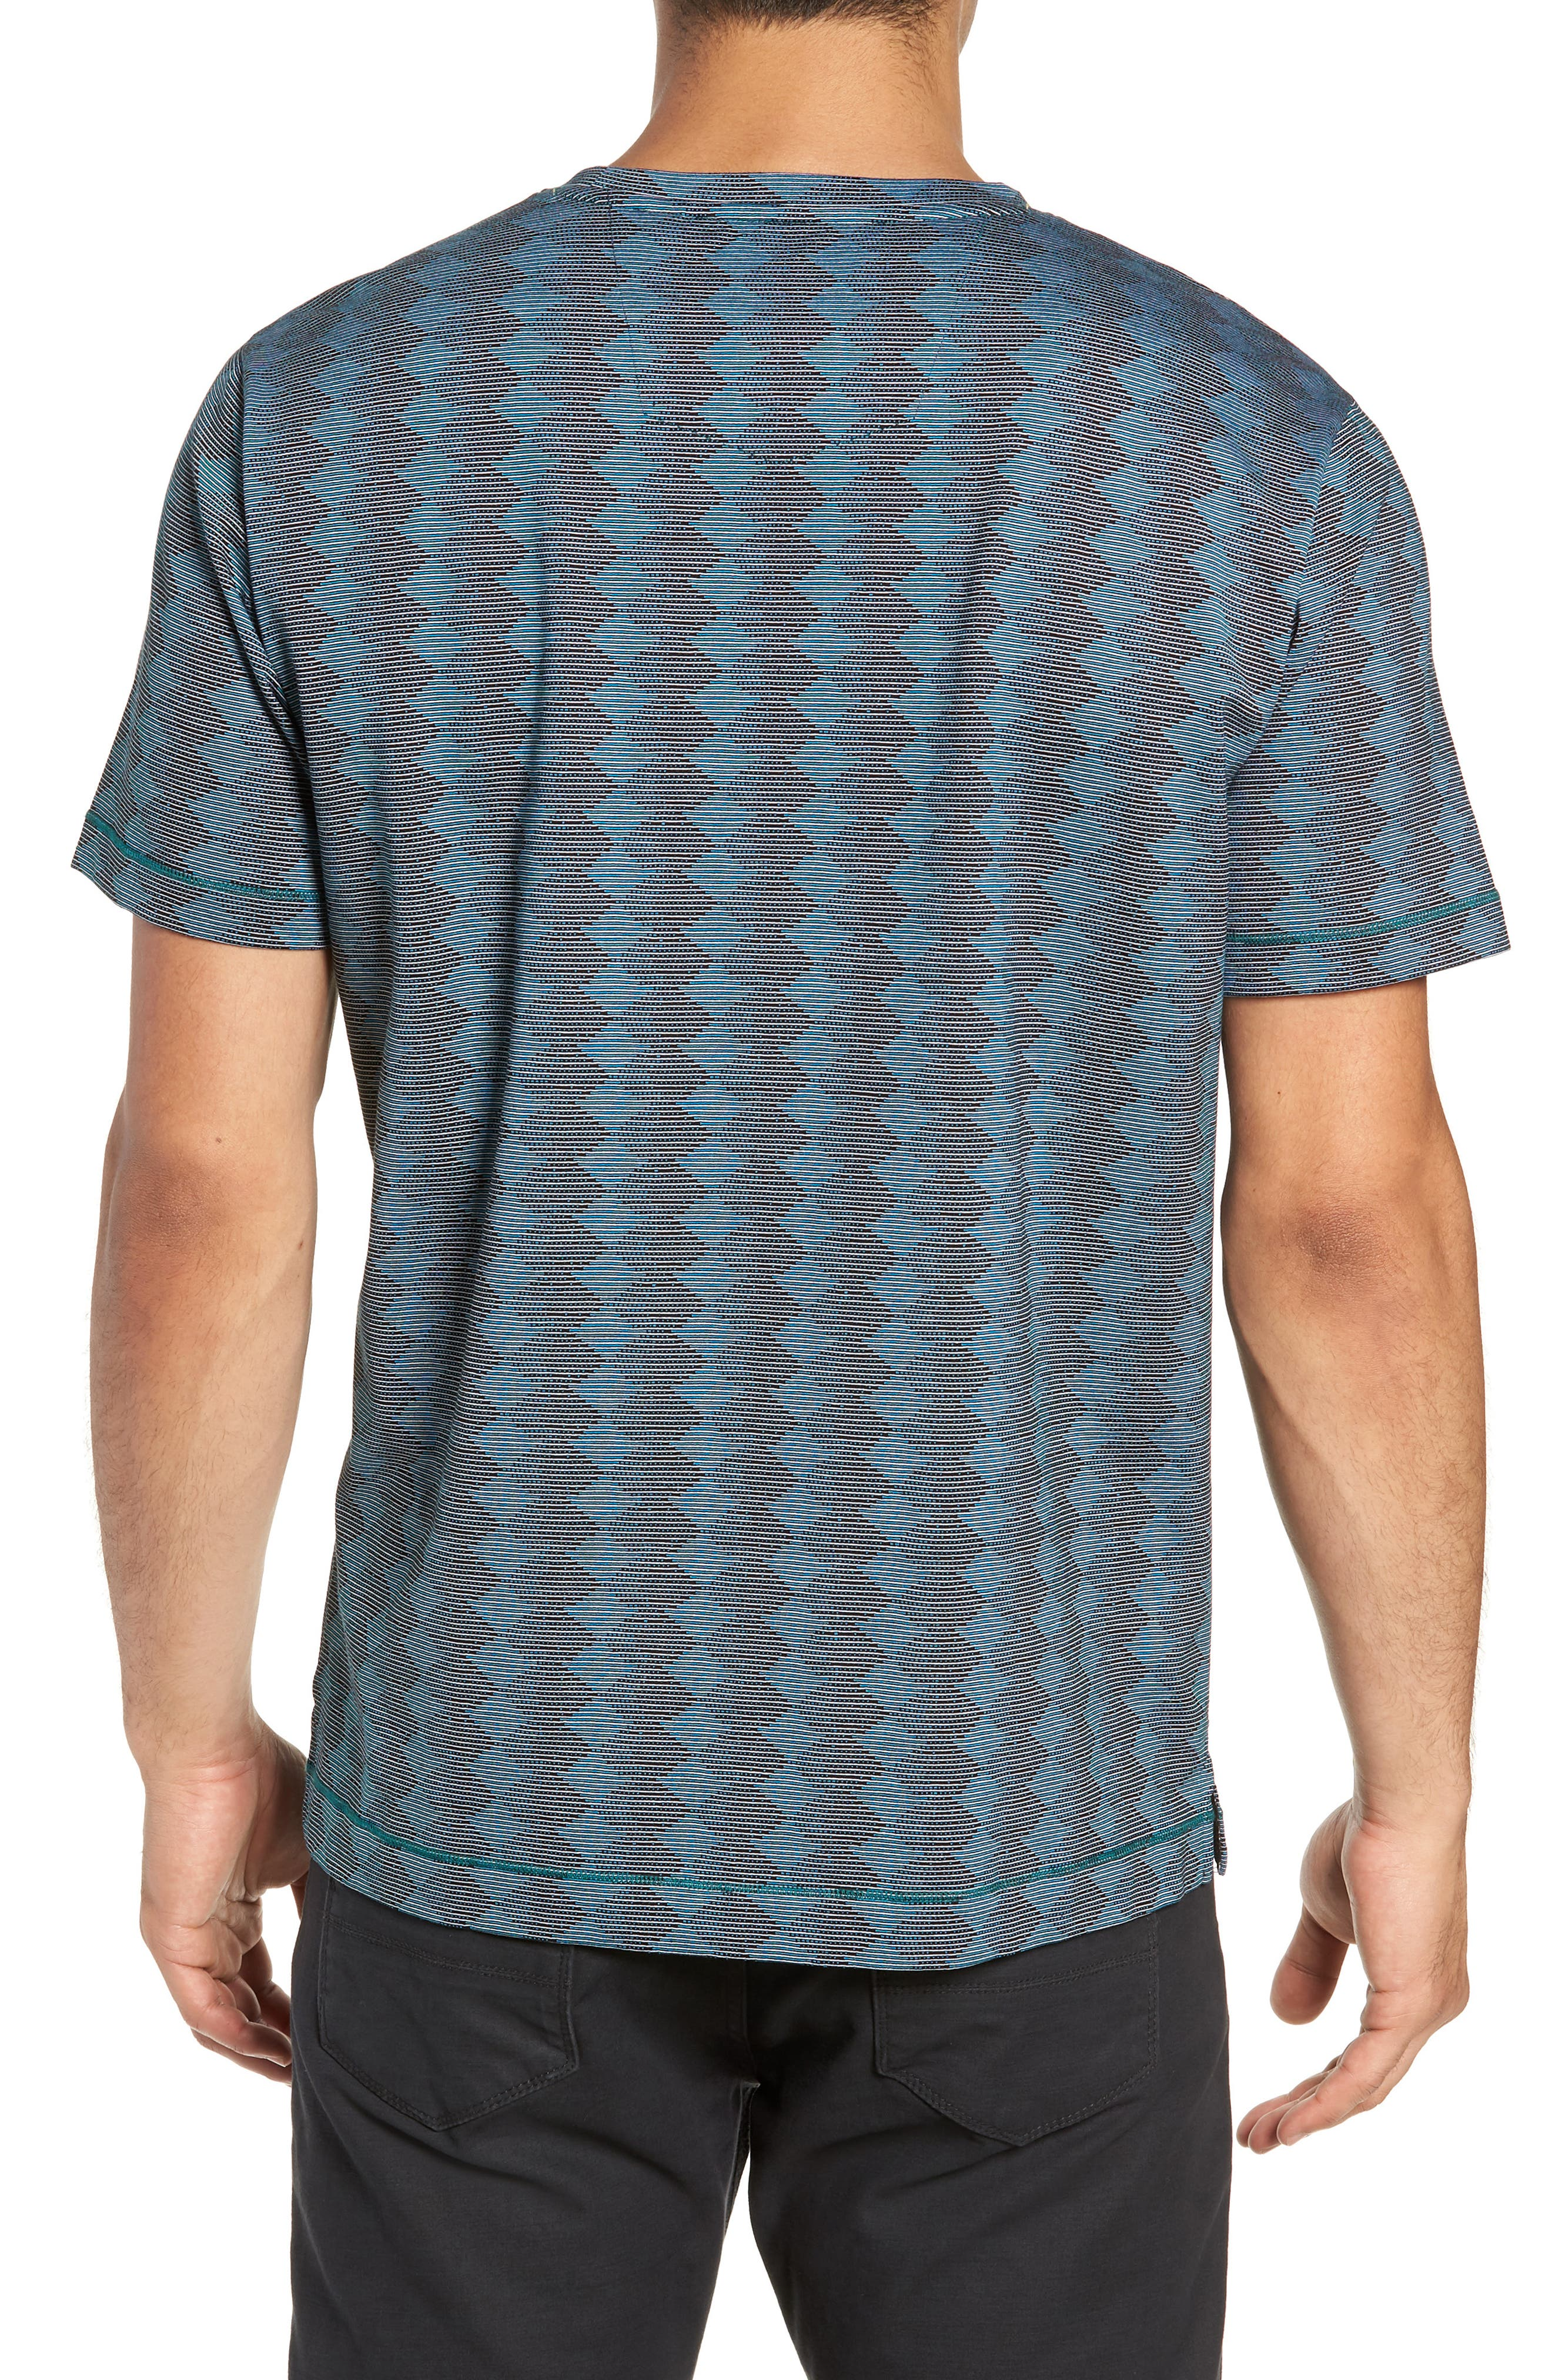 Philippe T-Shirt,                             Alternate thumbnail 2, color,                             TEAL